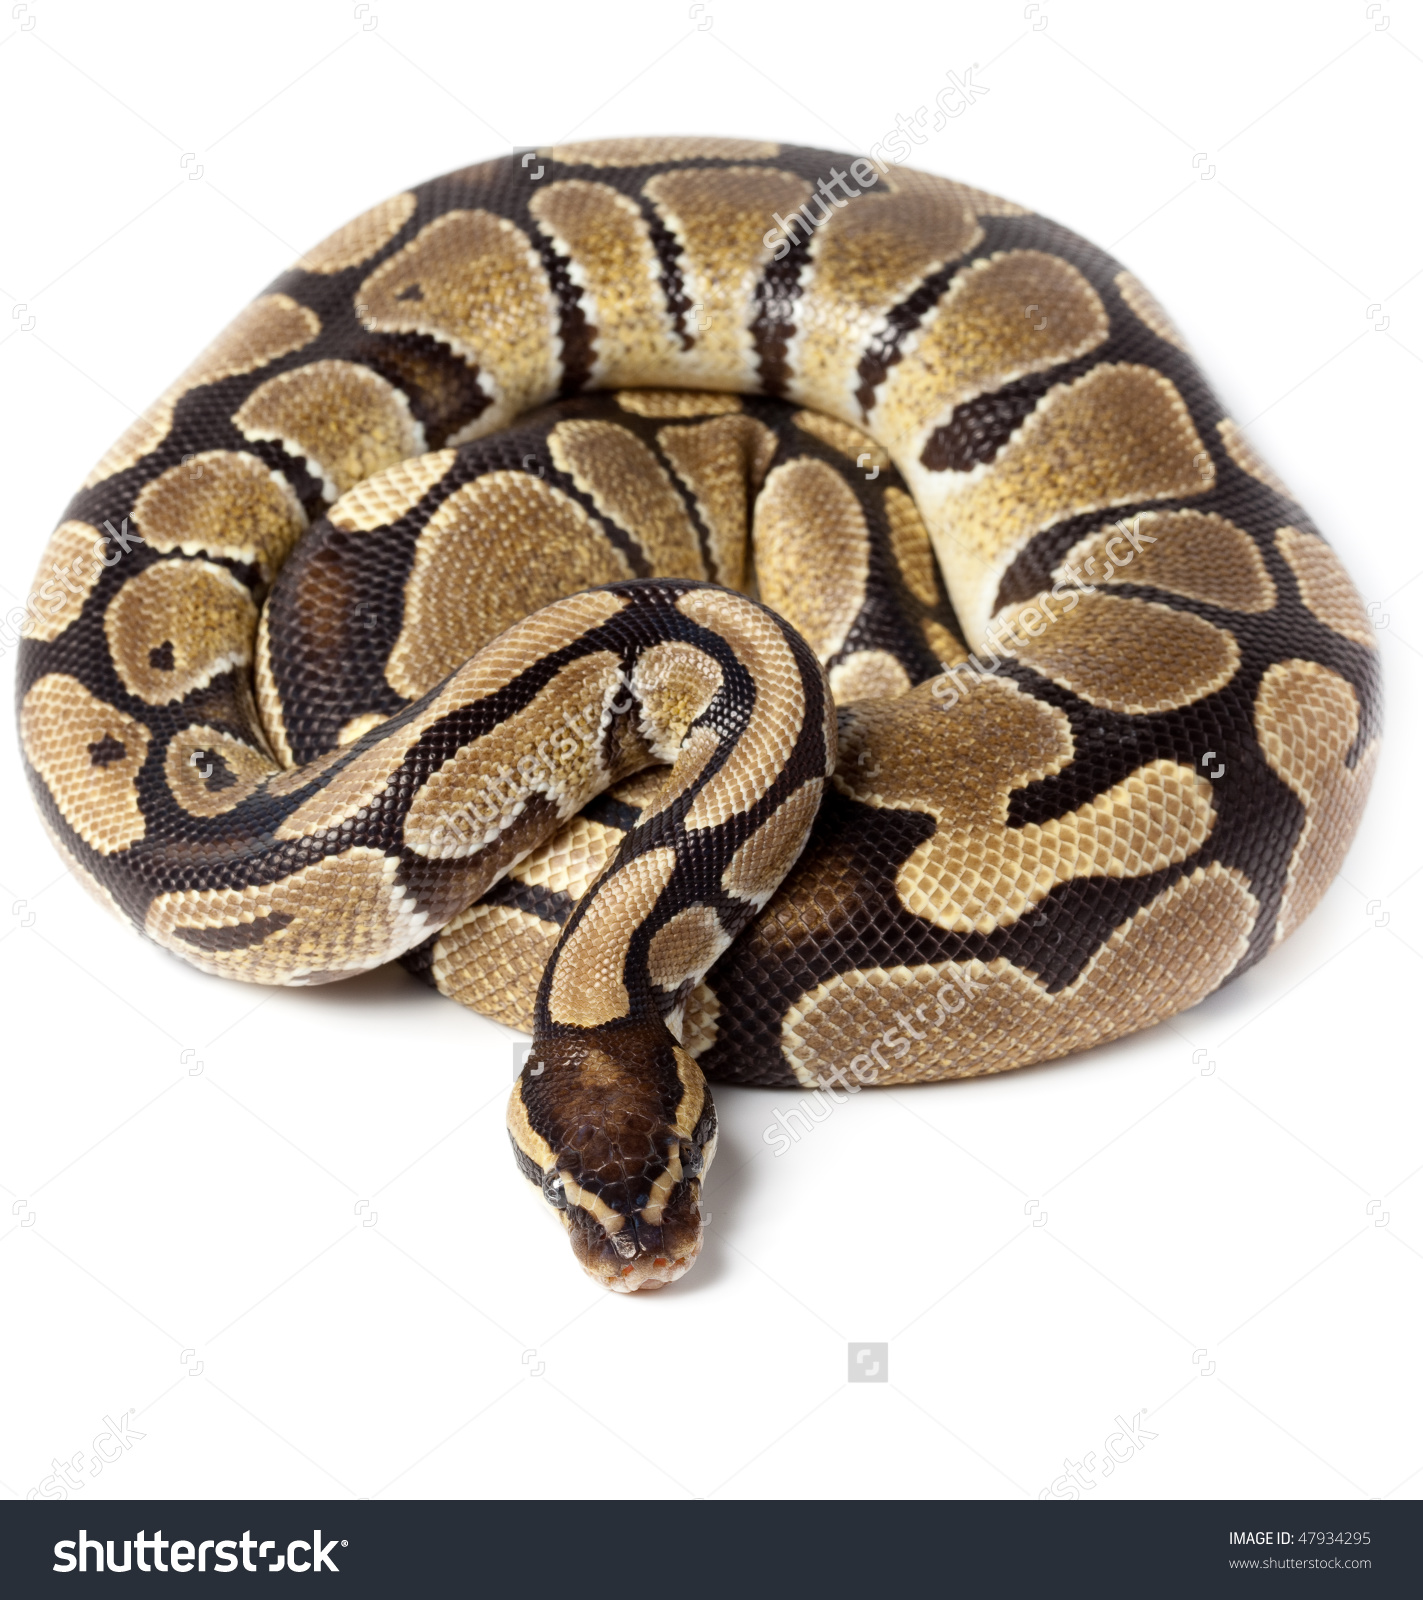 Ball Python clipart #3, Download drawings